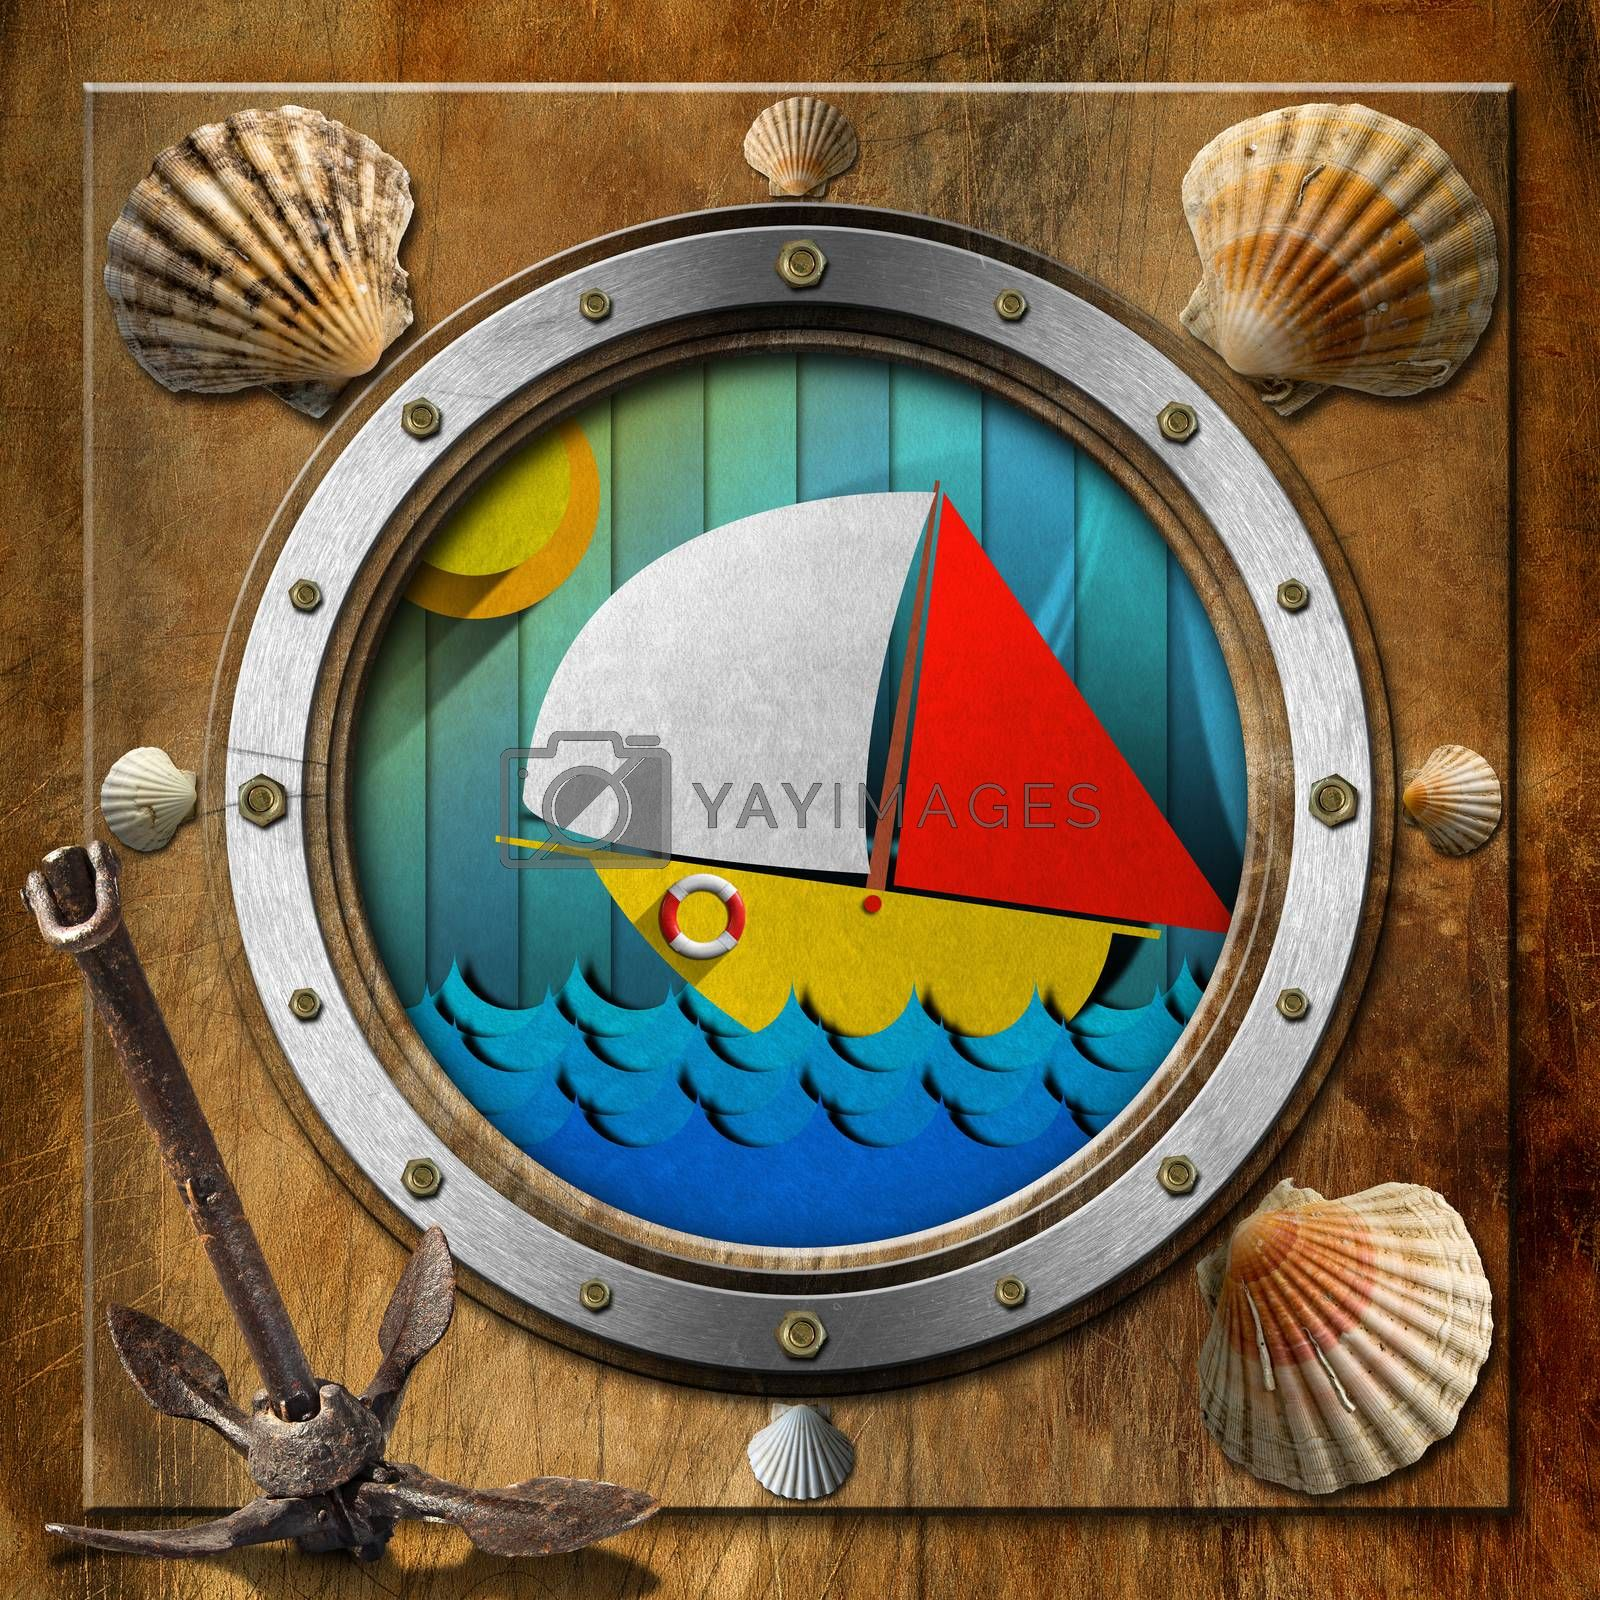 Brown and metallic porthole with bolts, seashells, rusty anchor and stylized sailboat on the waves of the sea